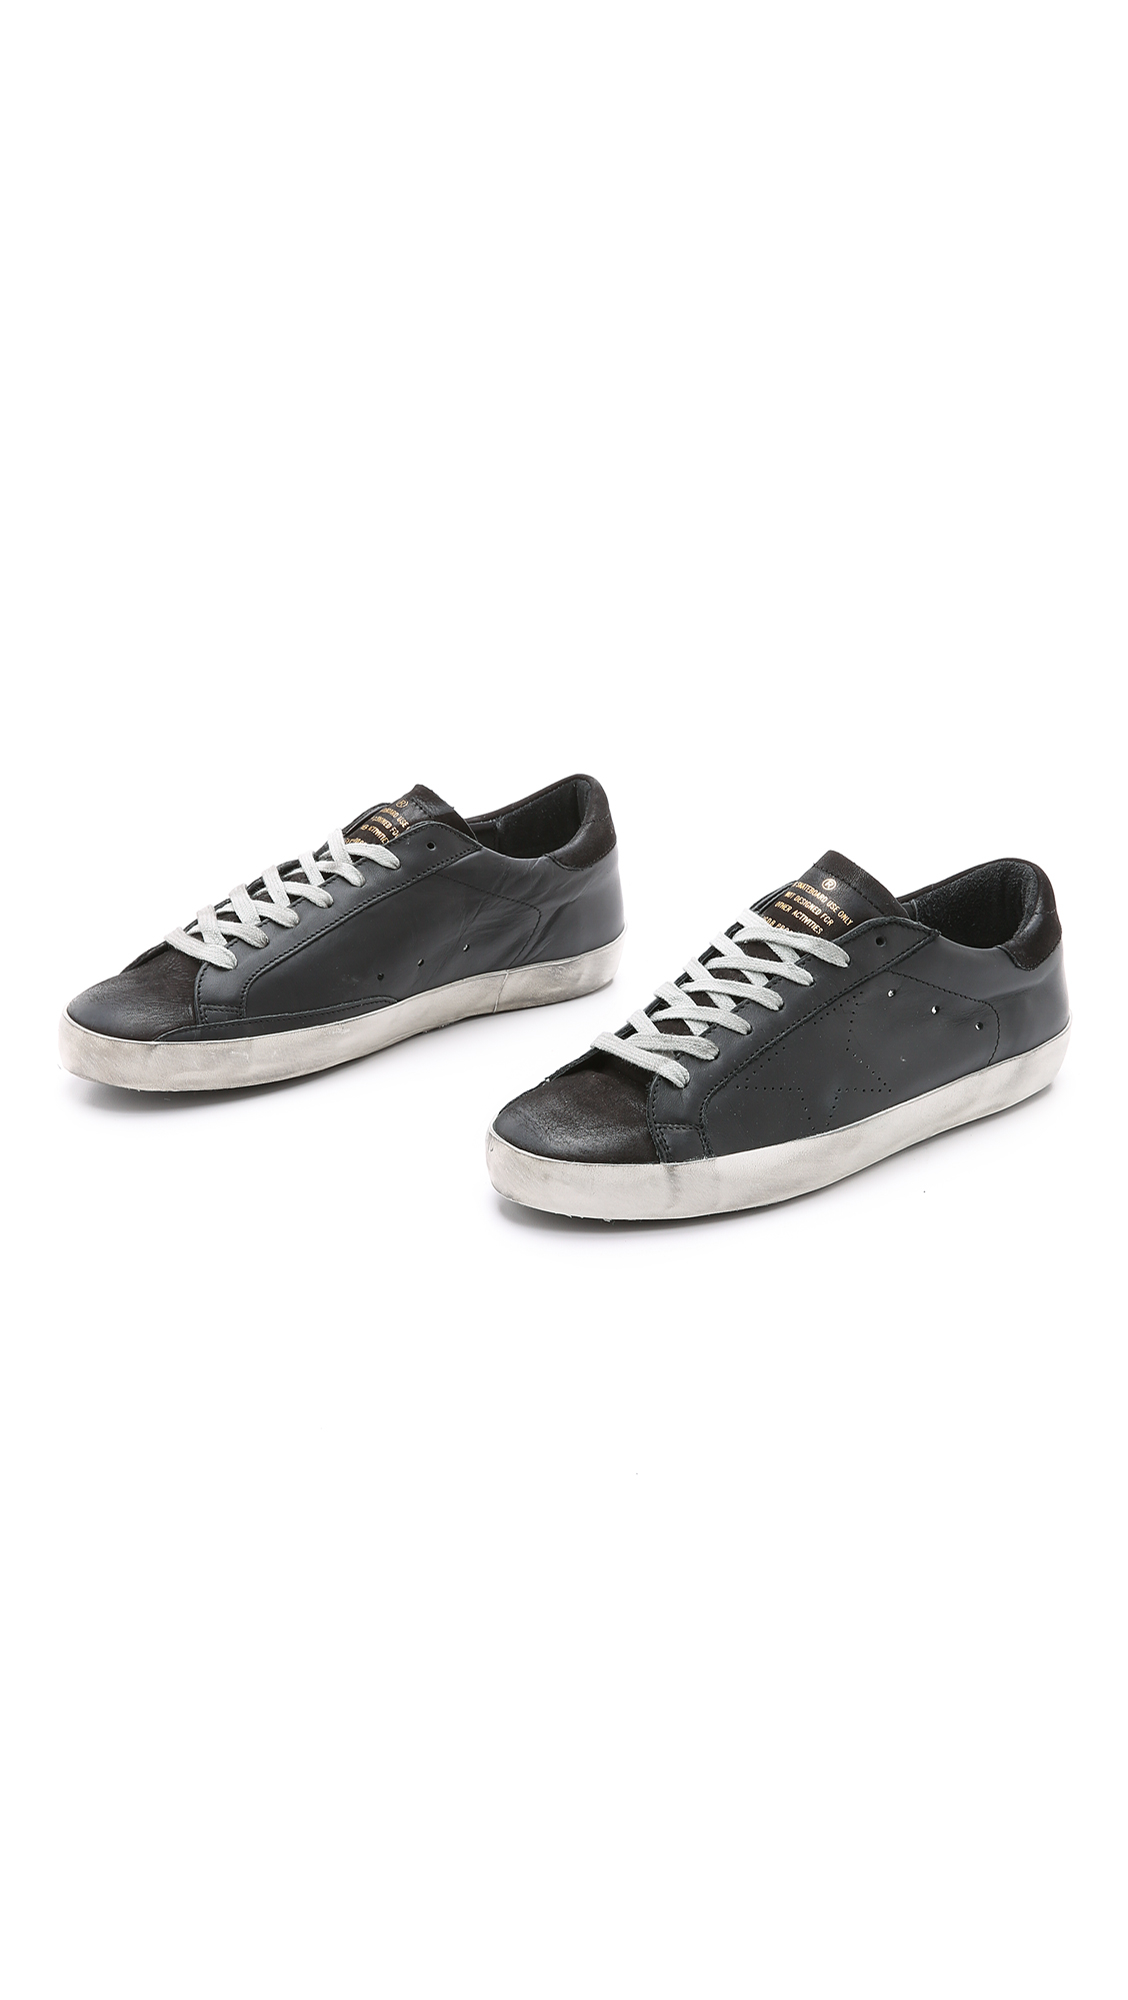 a58098f2dc2d1 Lyst - Golden Goose Deluxe Brand Superstar Leather Low-Top Sneakers ...